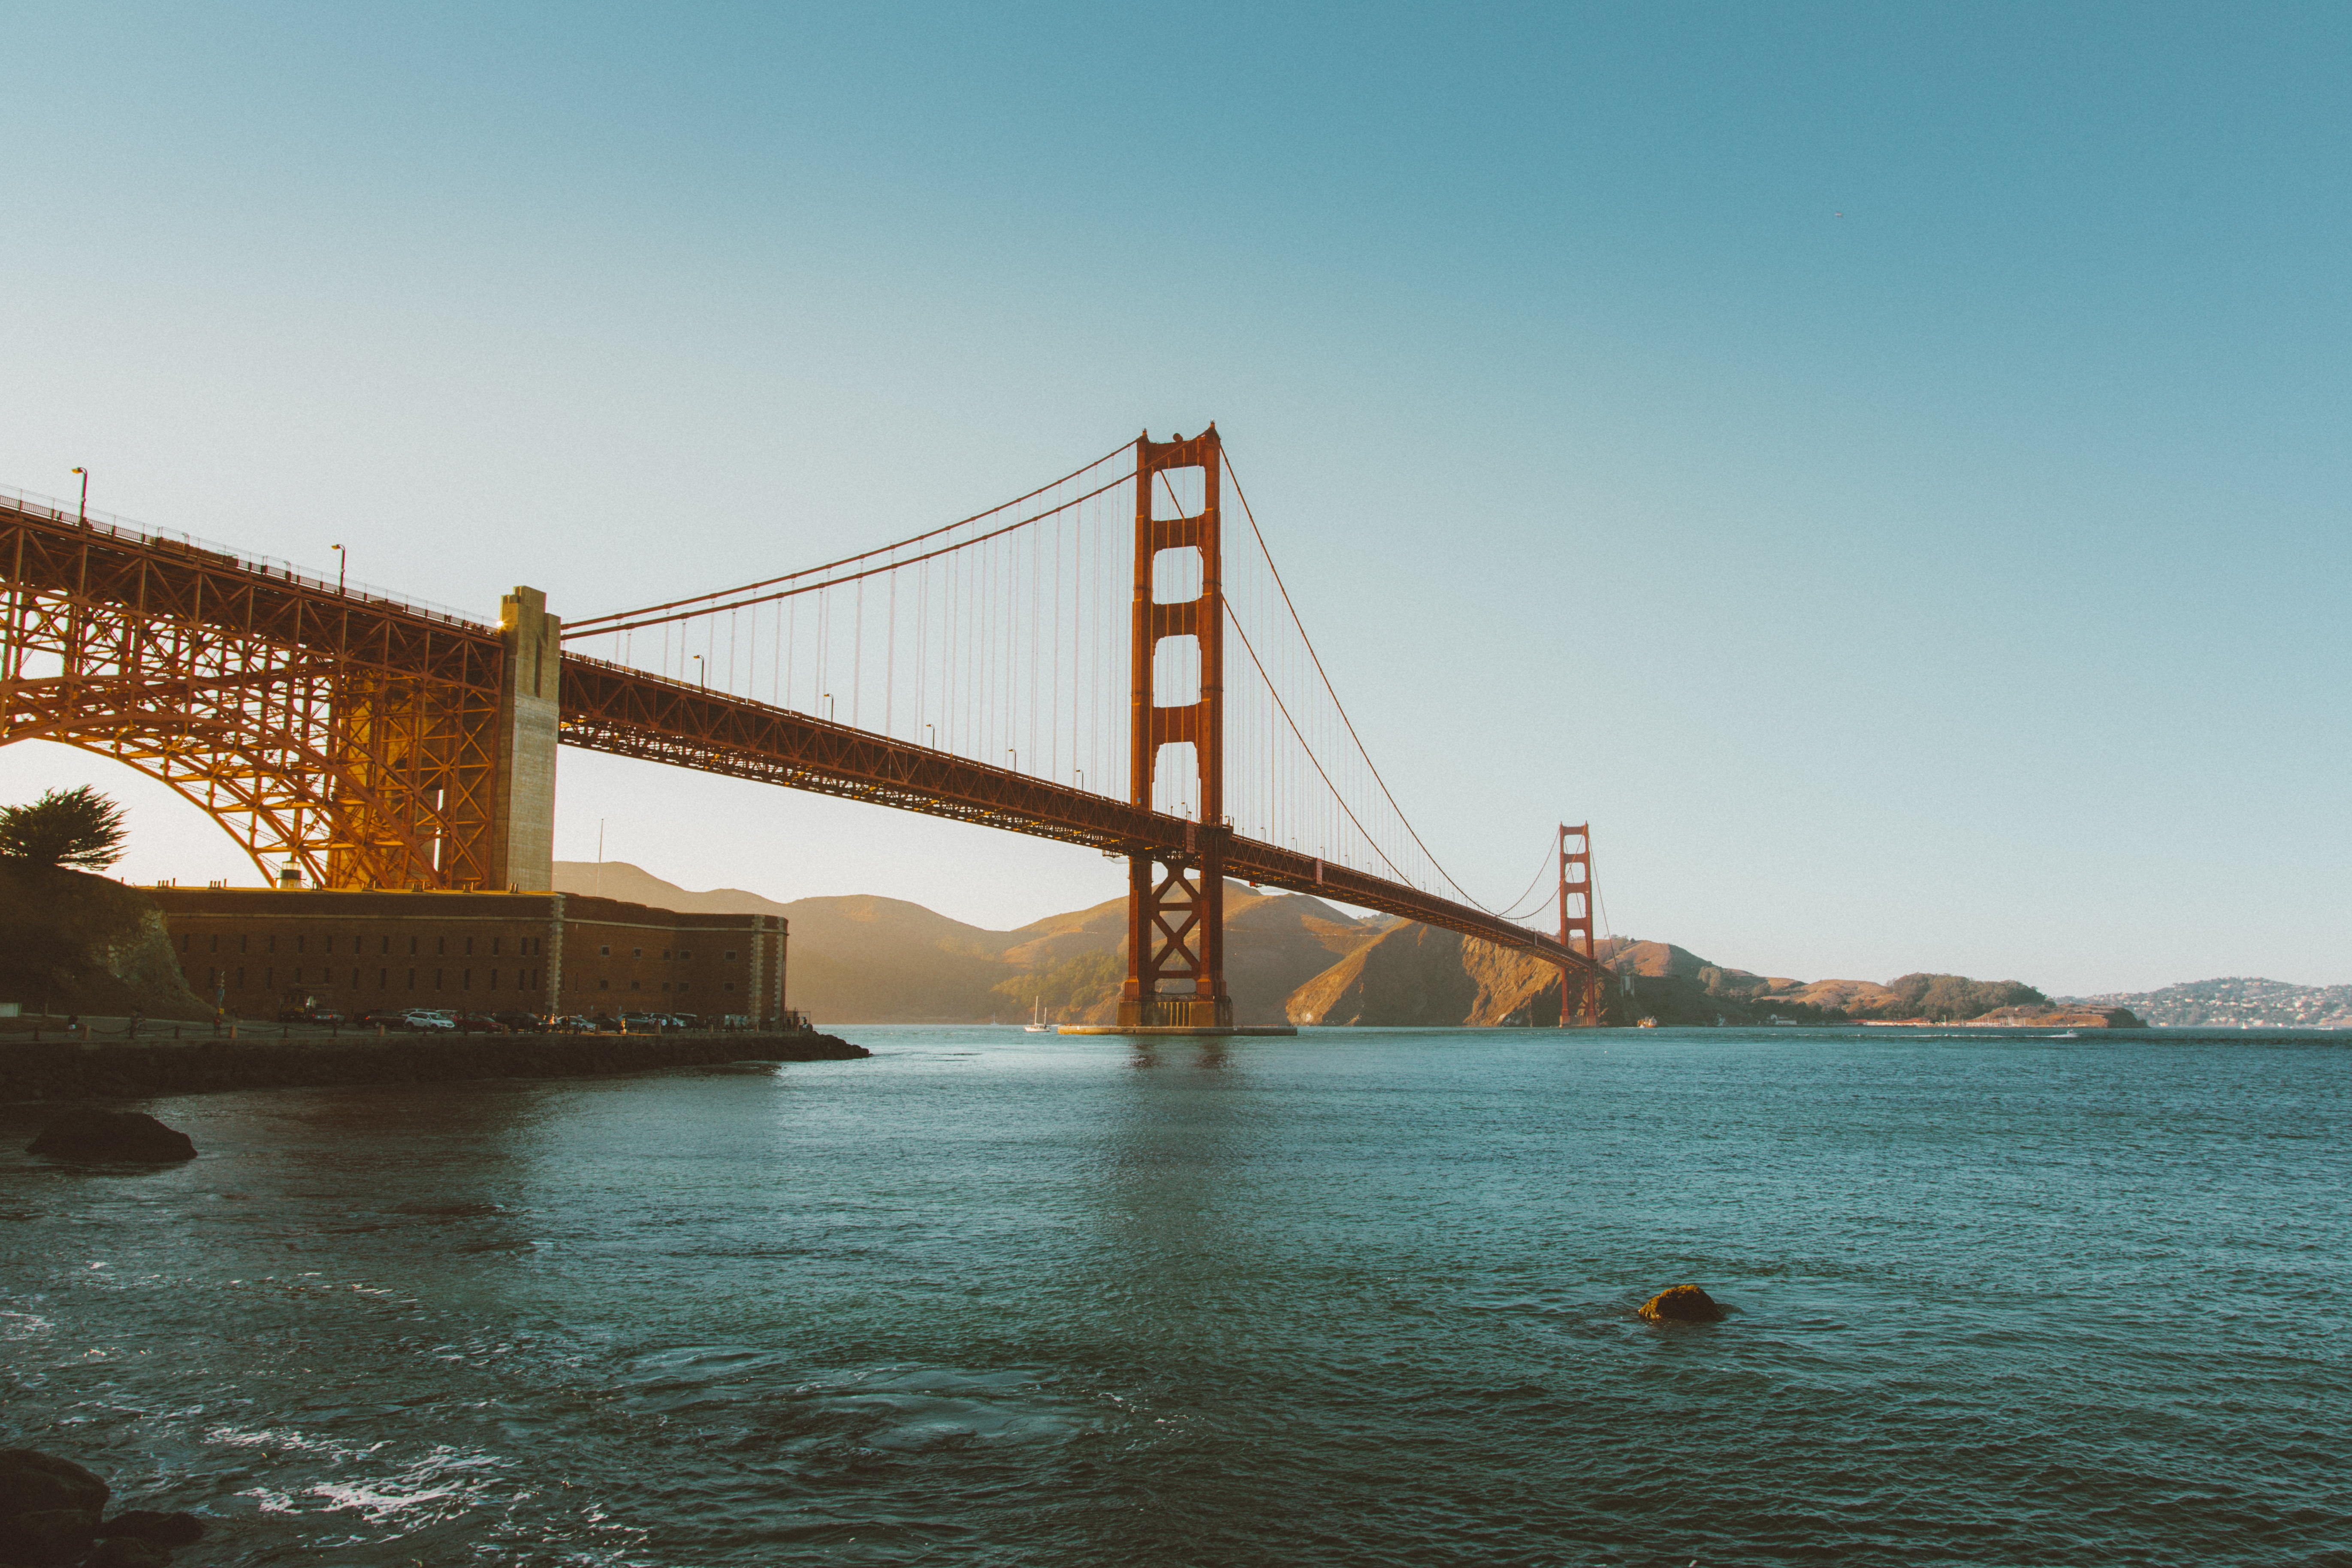 Golden Gate Bridge at sunset, San Francisco, architecture, bay, water, mountains, sunshine, summer, blue, sky, puente, torres, atardecer